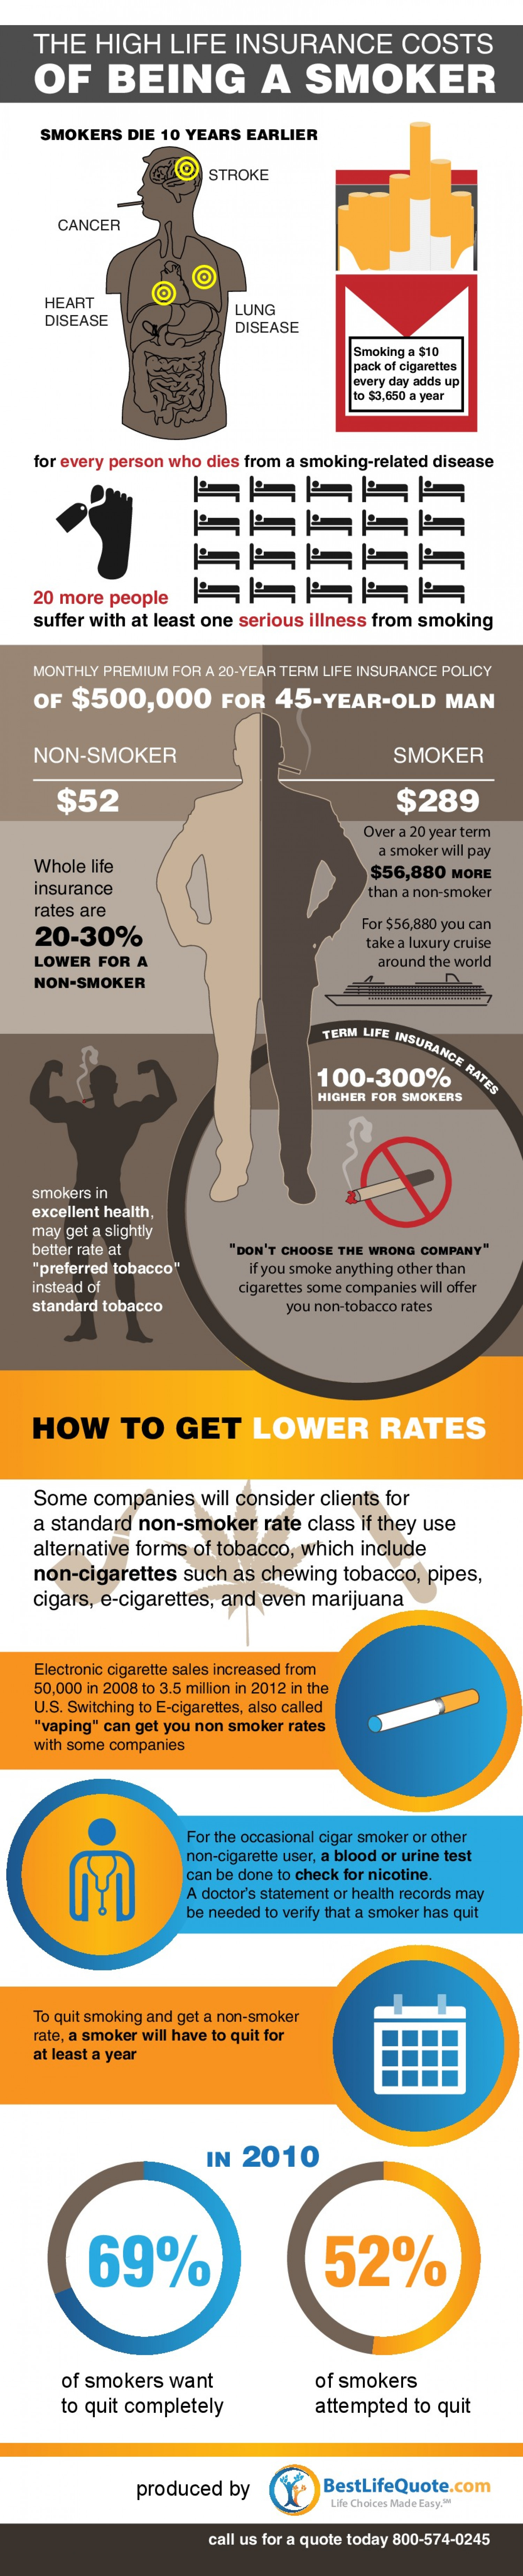 Life Insurance for Smokers Infographic